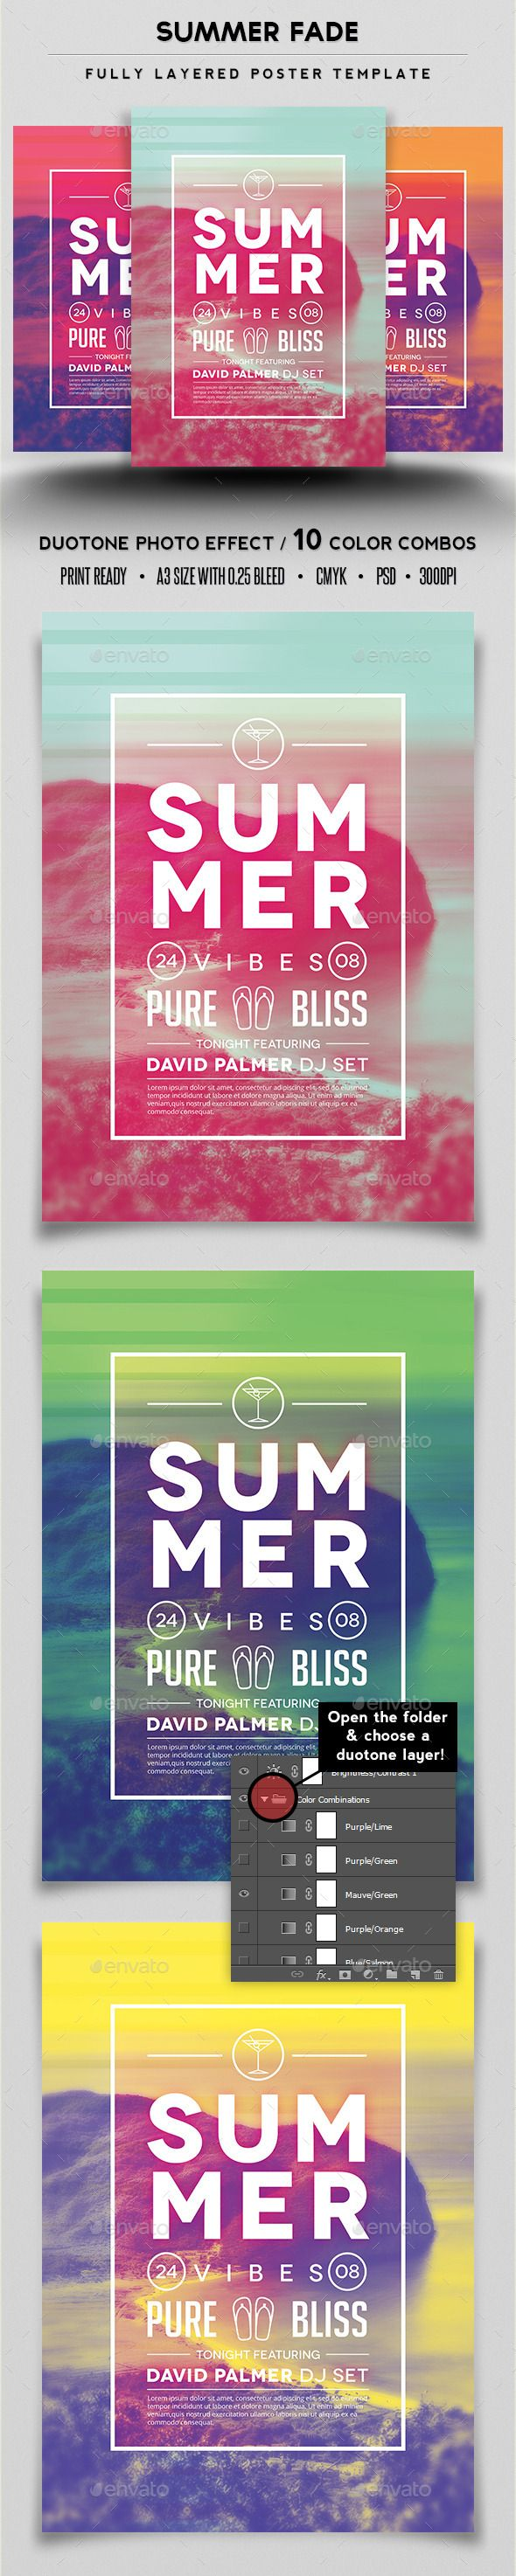 Poster design download - Summer Fade Poster Template